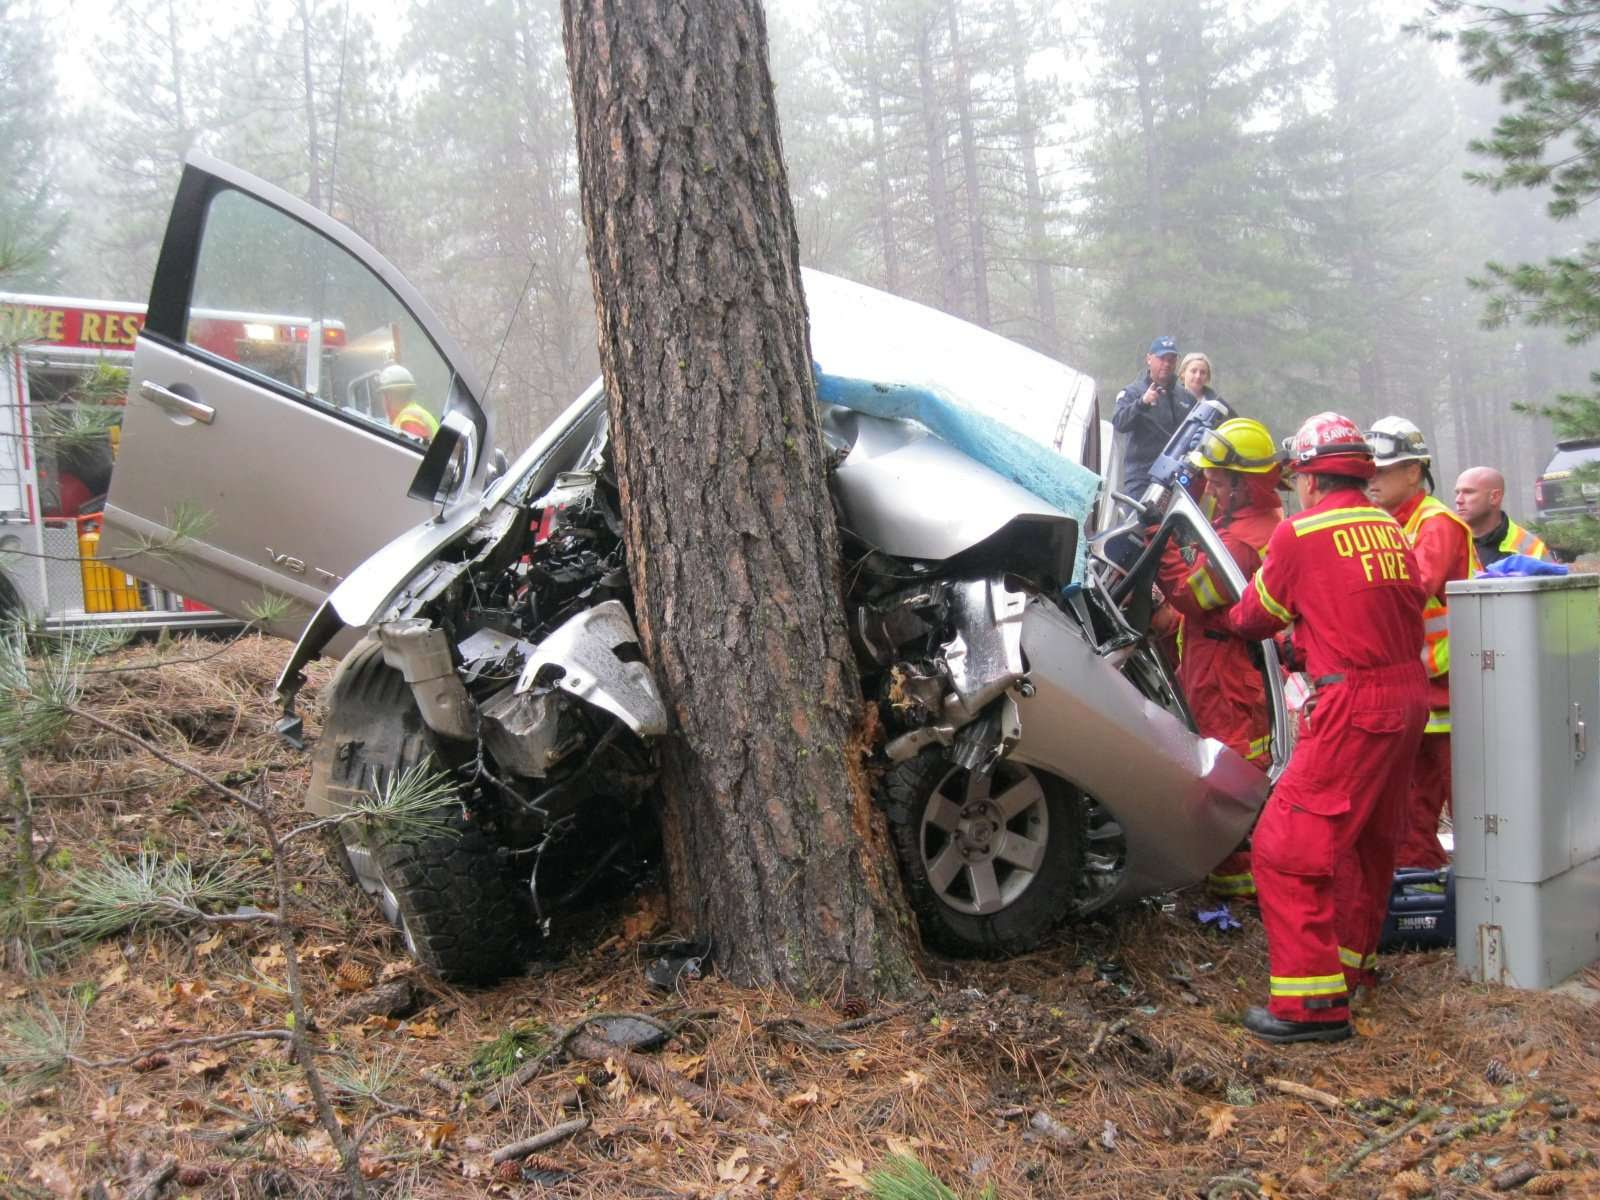 Two killed in single-car accident - Plumas News